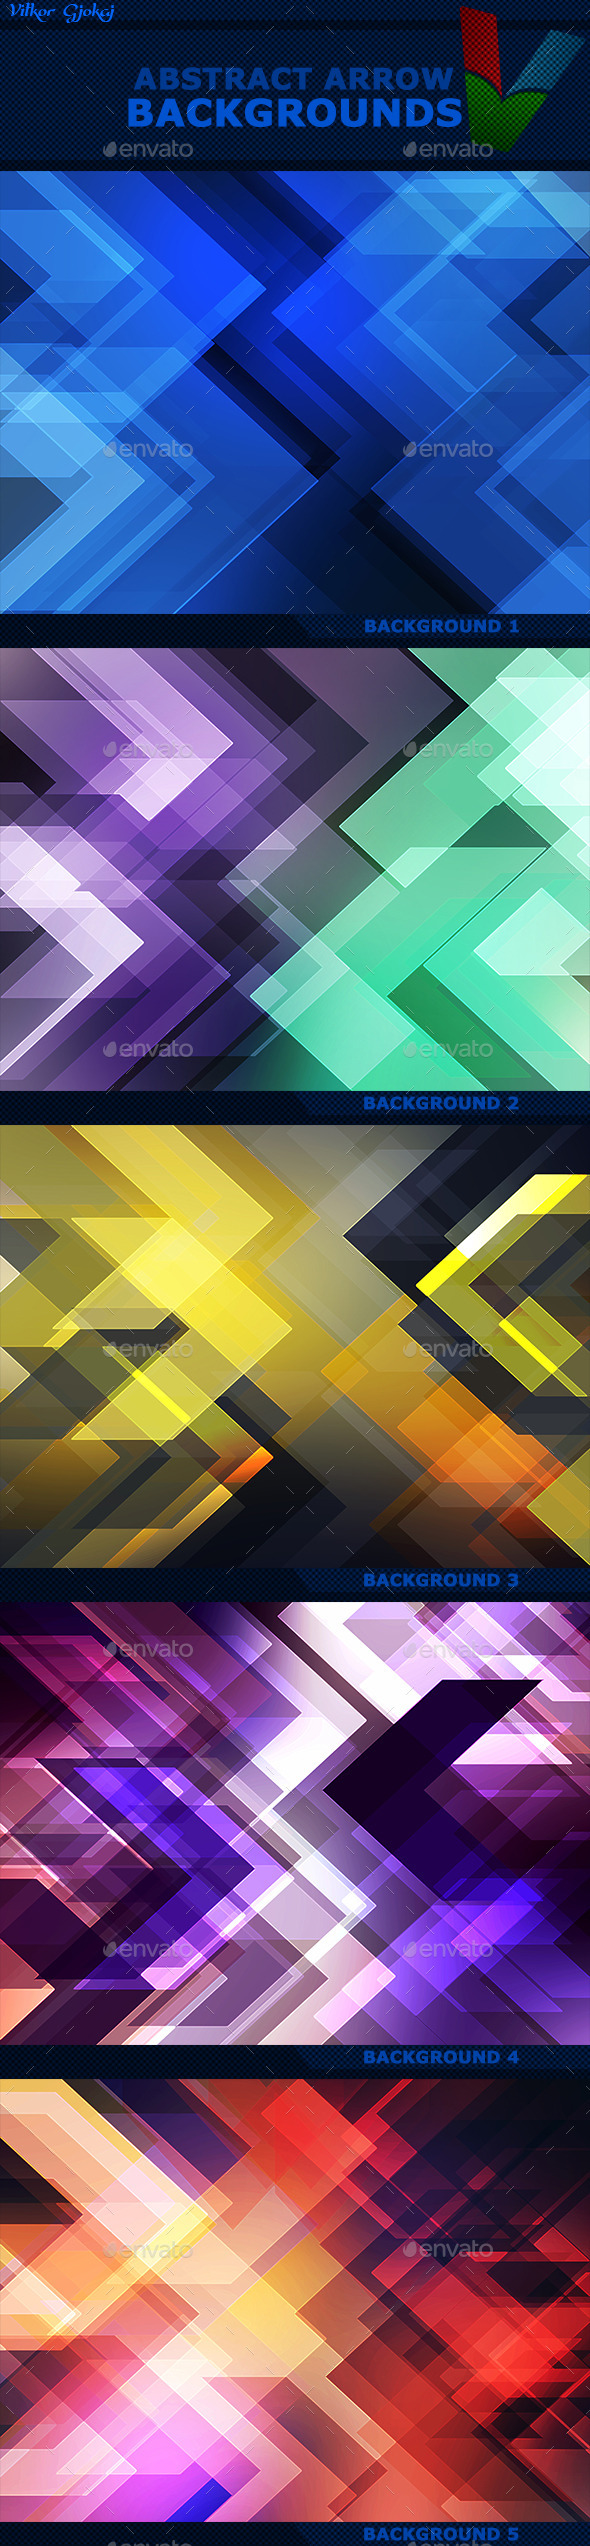 GraphicRiver Abstract Arrow Backgrounds 11854729